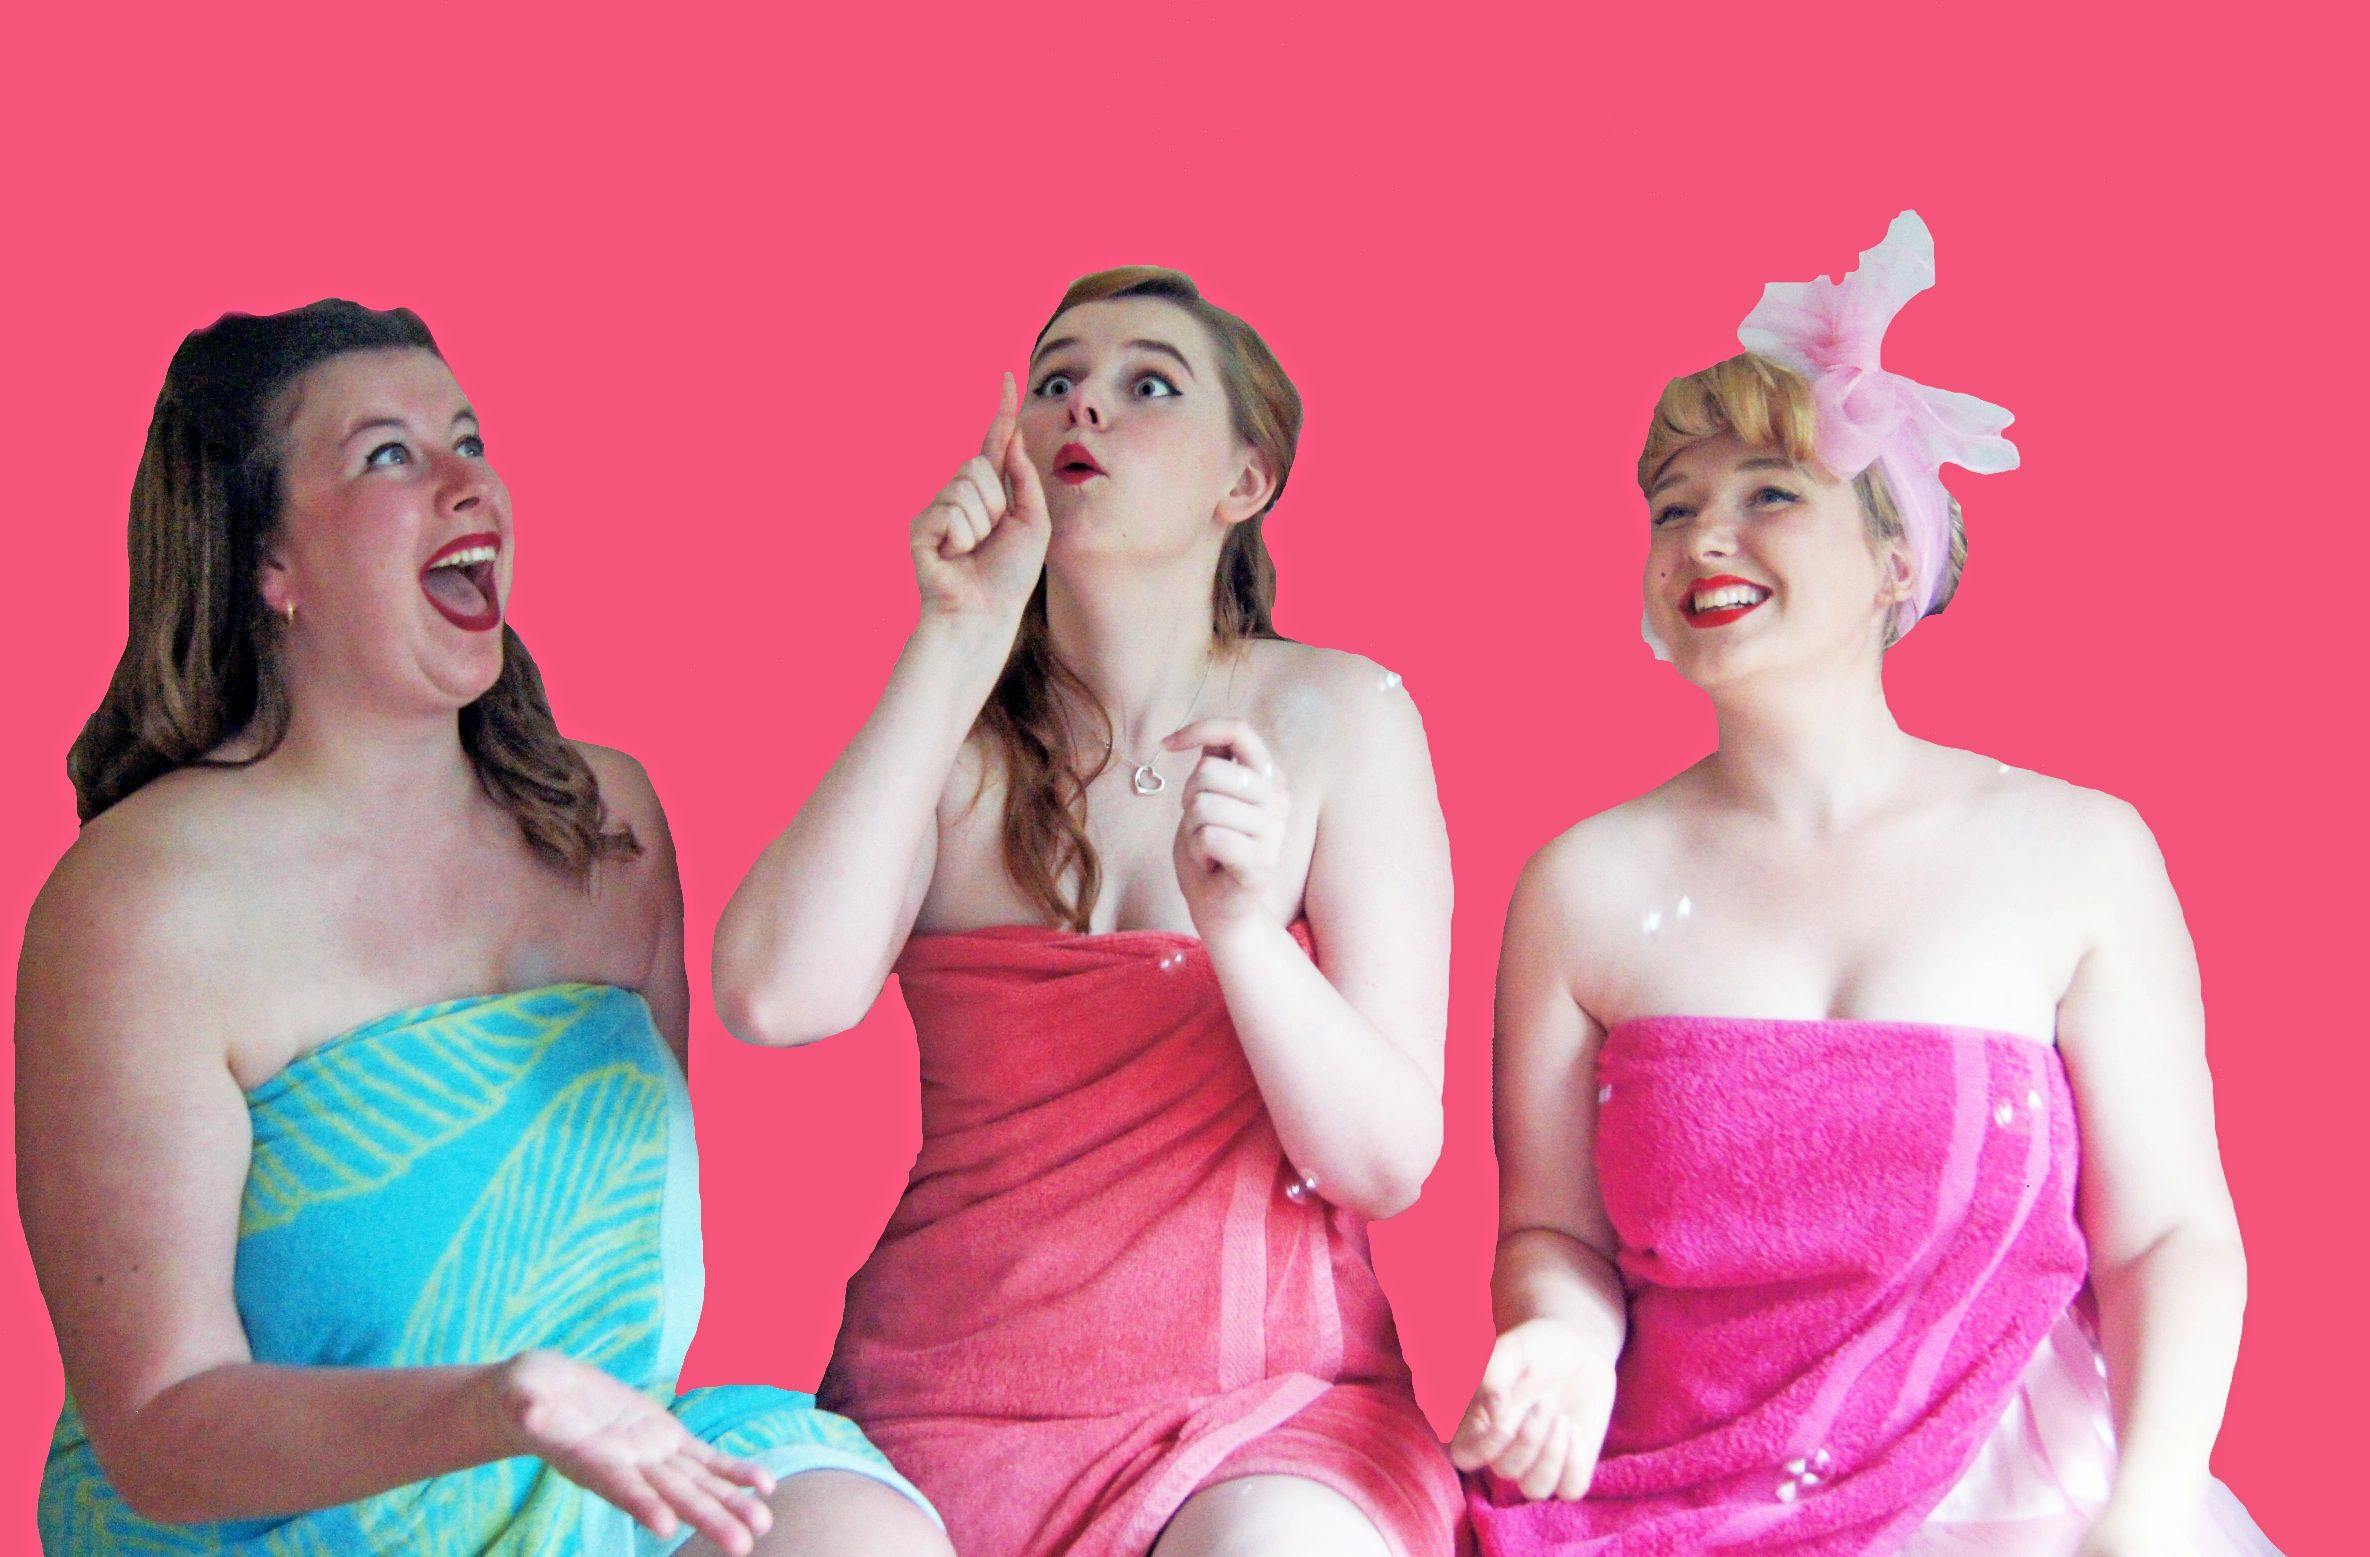 Comedy trio: Cherry, Squeaky and Bubbles from Washdown Cabaret